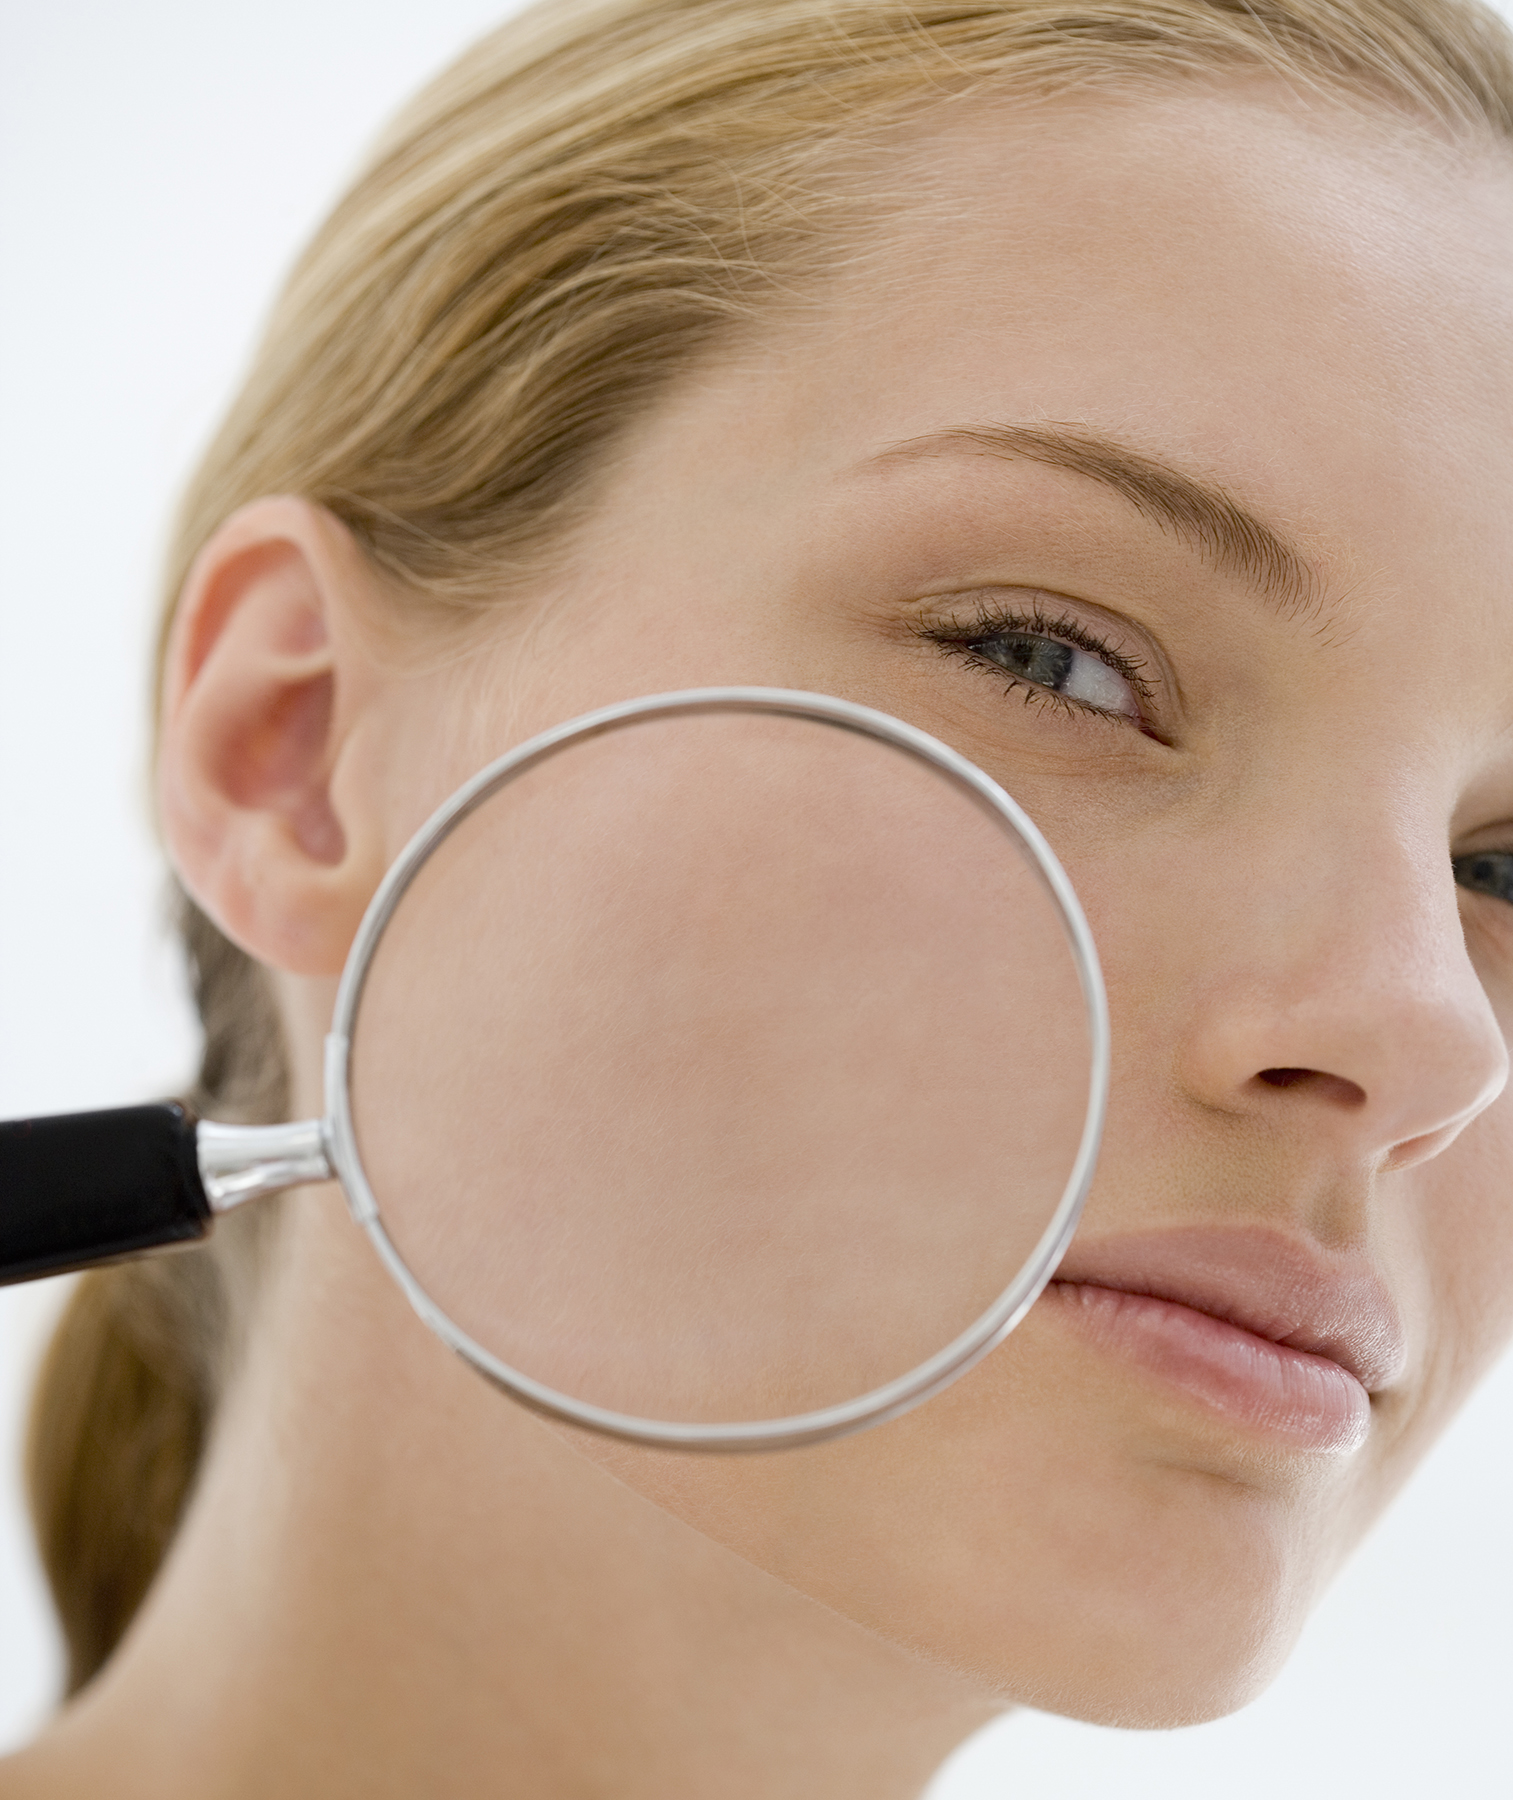 Woman with magnifying glass on skin